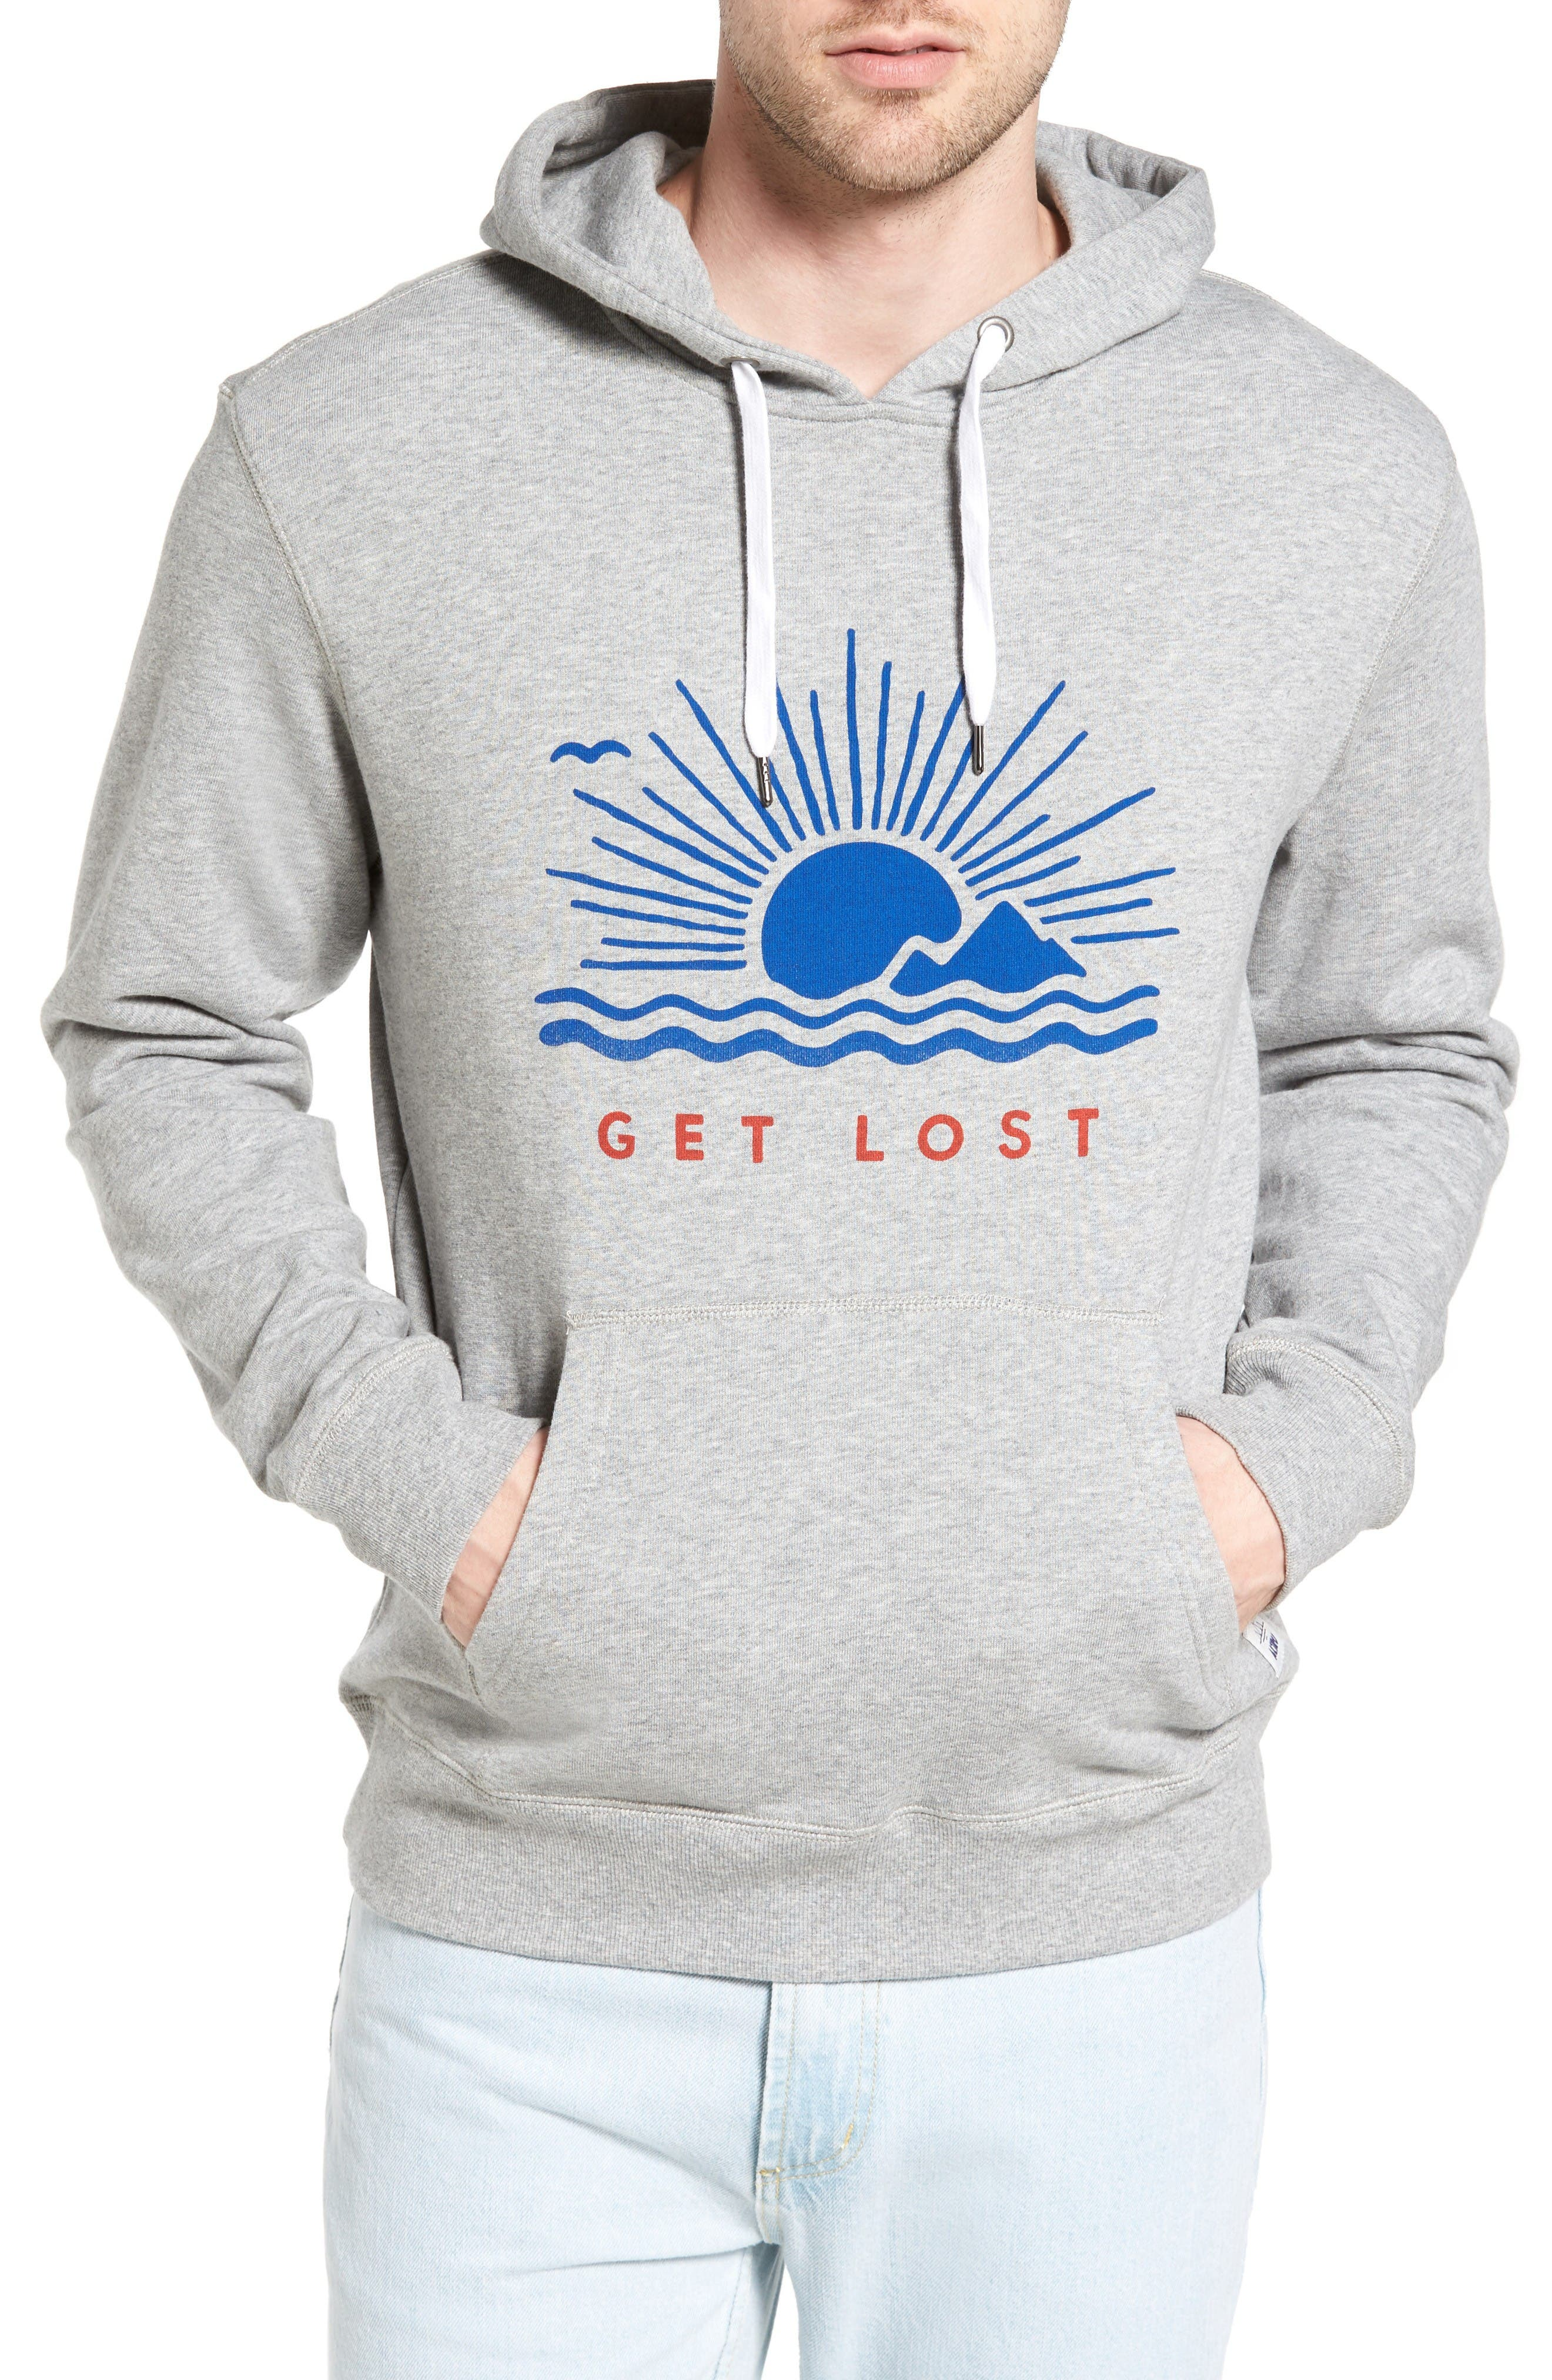 Get Lost French Terry Hoodie,                         Main,                         color, Gray